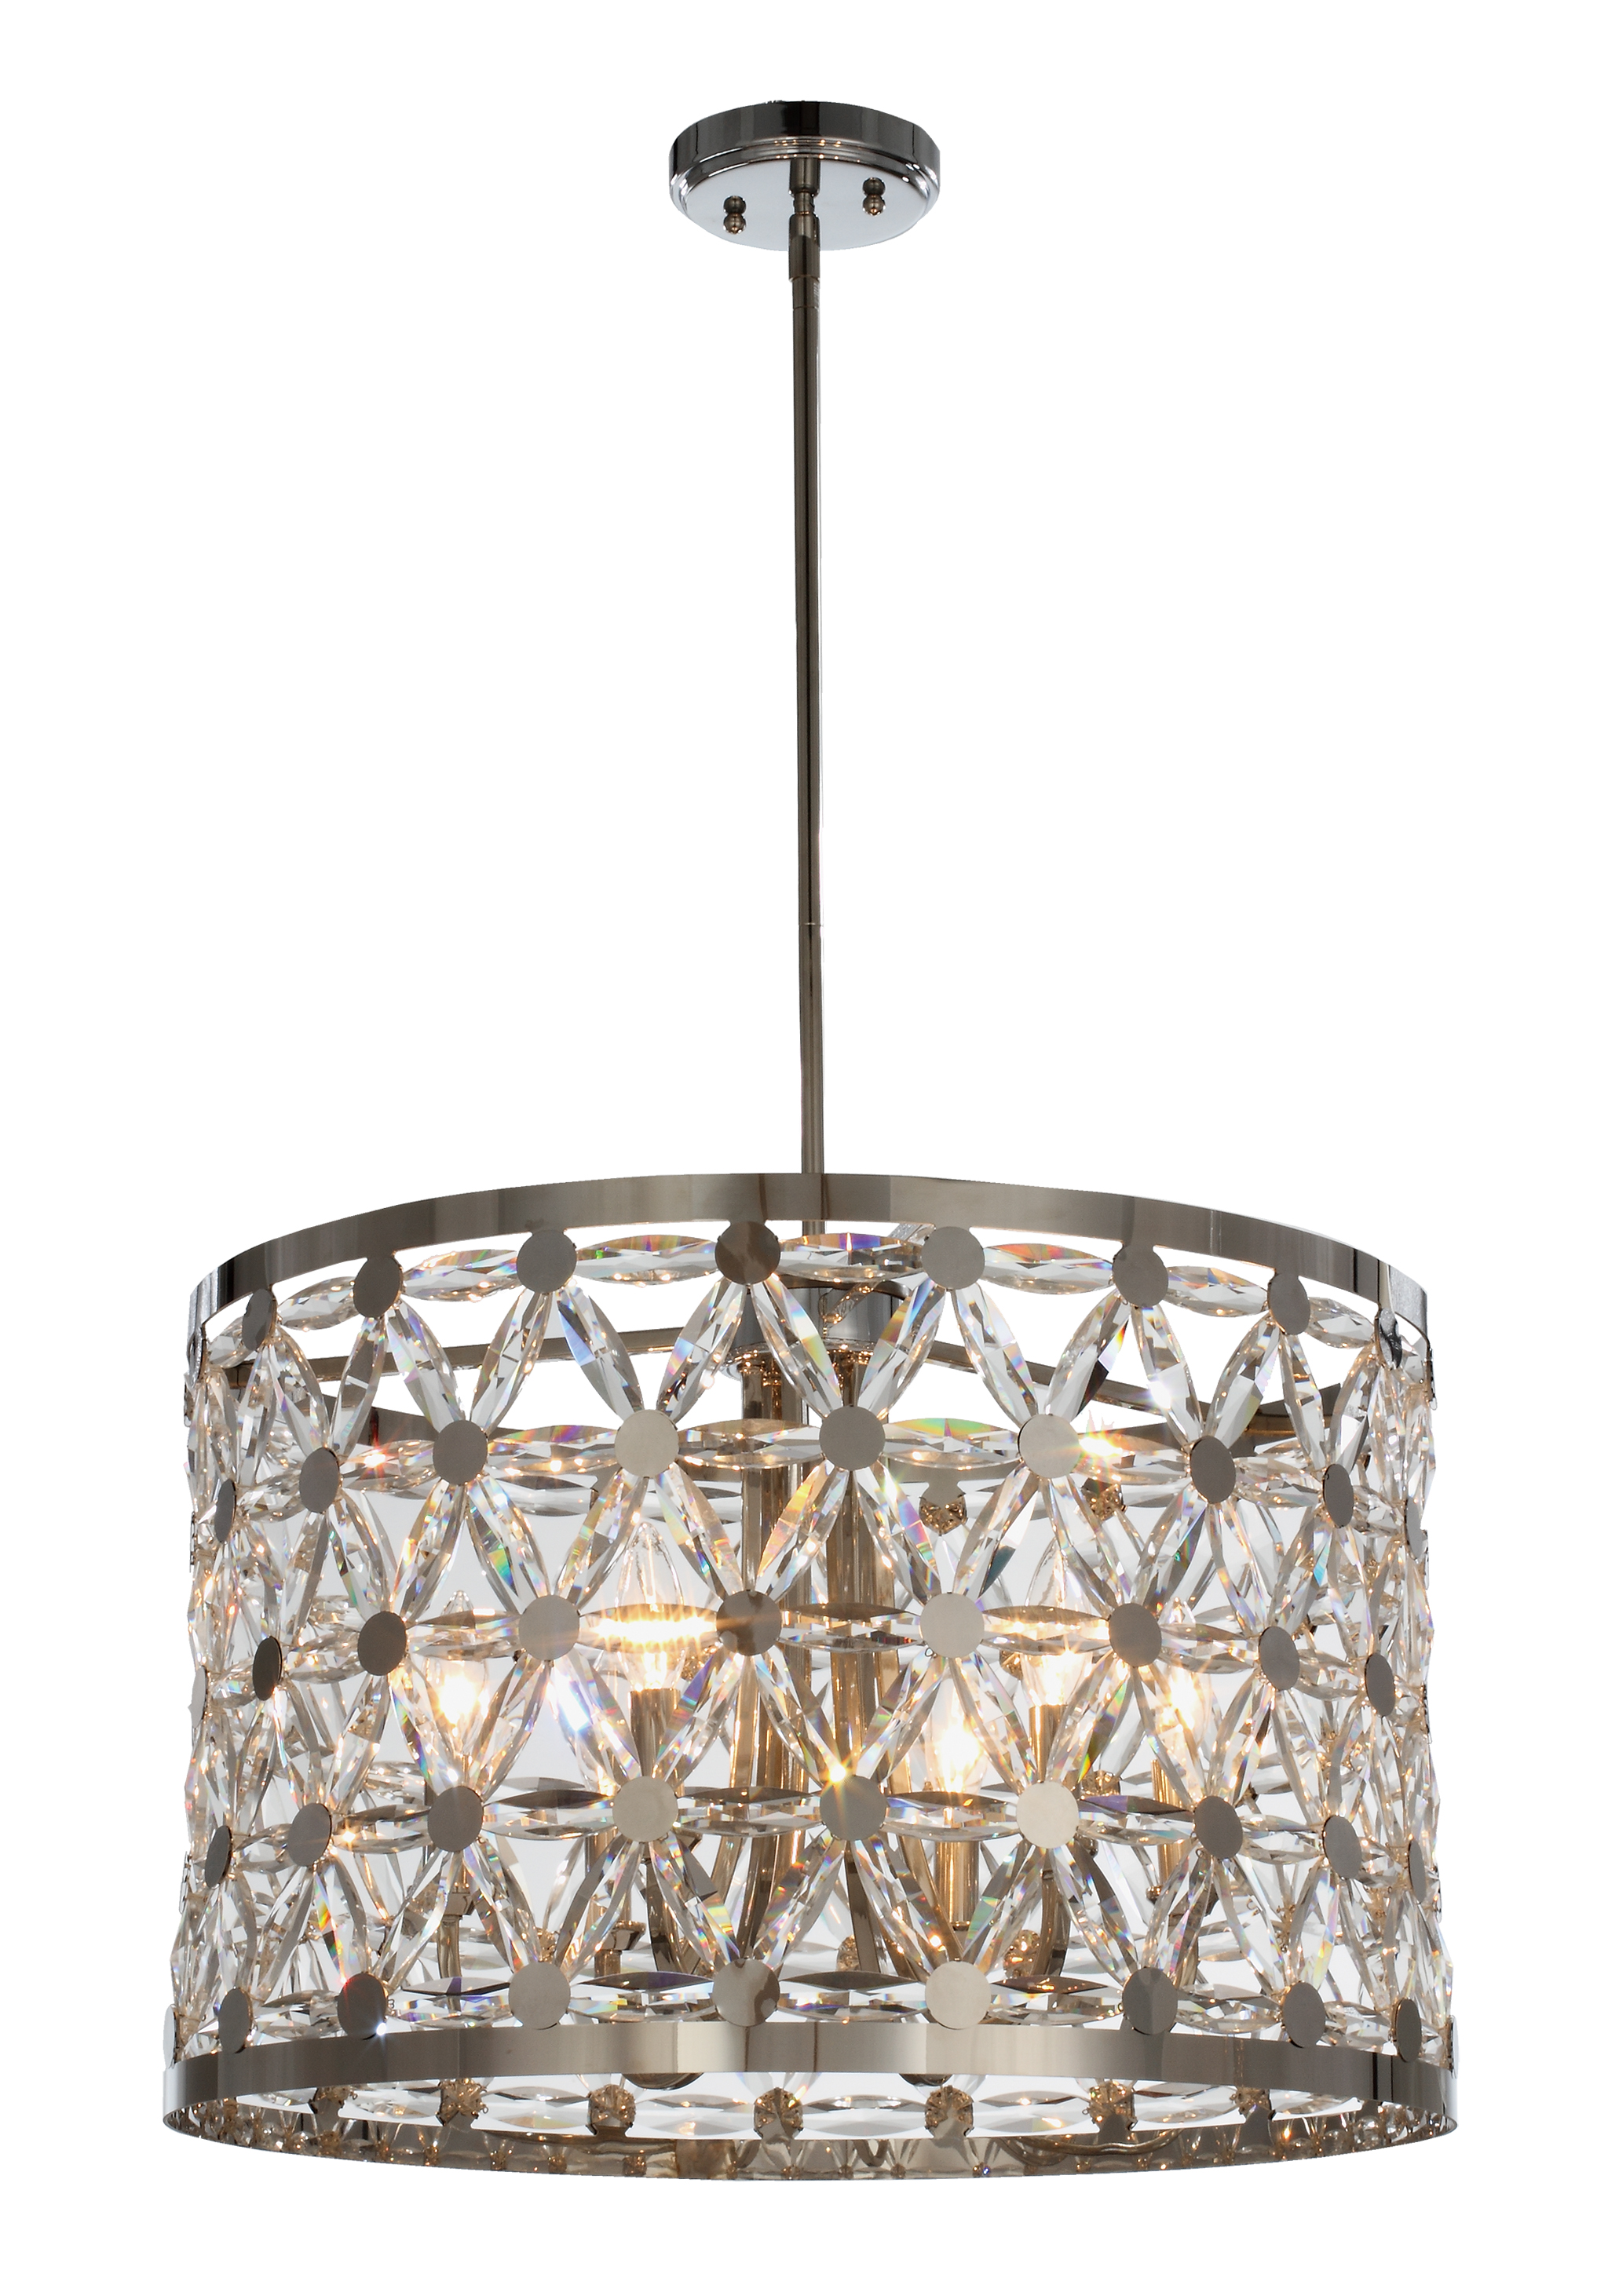 Cassiopeia Pendant | Maxim Lighting